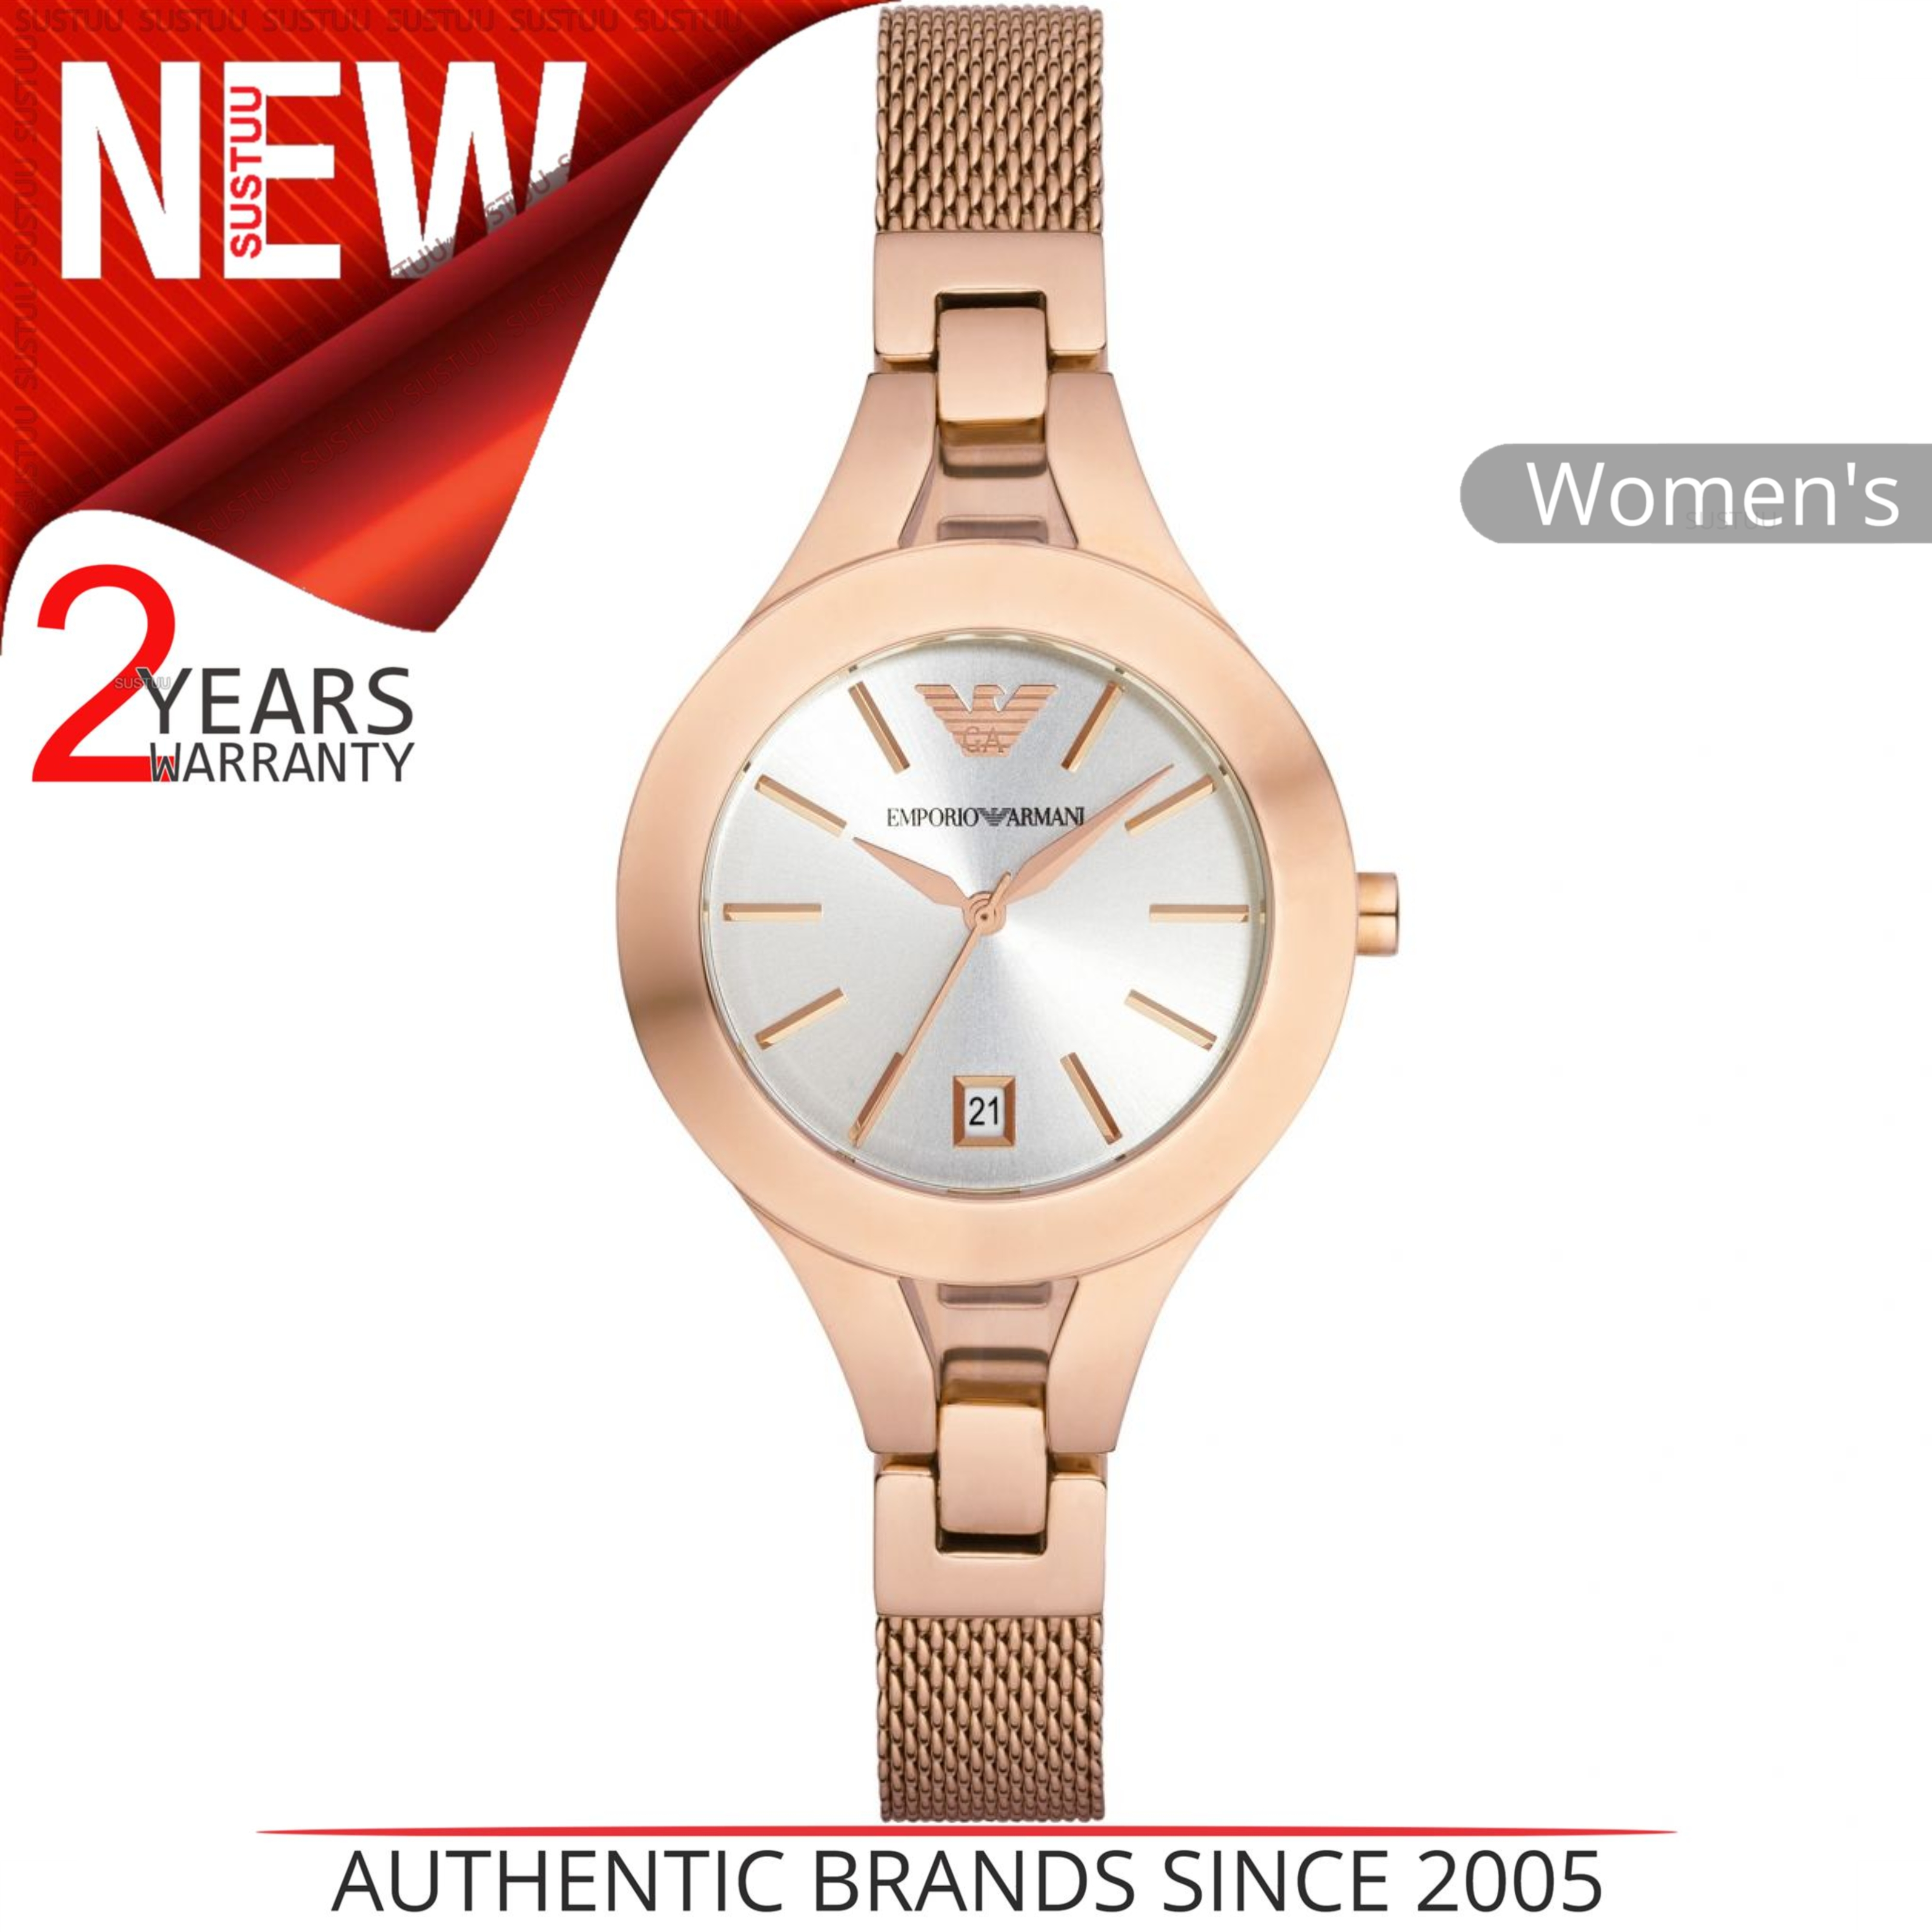 Sentinel Emporio Armani Women s Watch│Chiara Silver Dial│Rose Gold Bracelet  Band│AR7400 bc2876f027